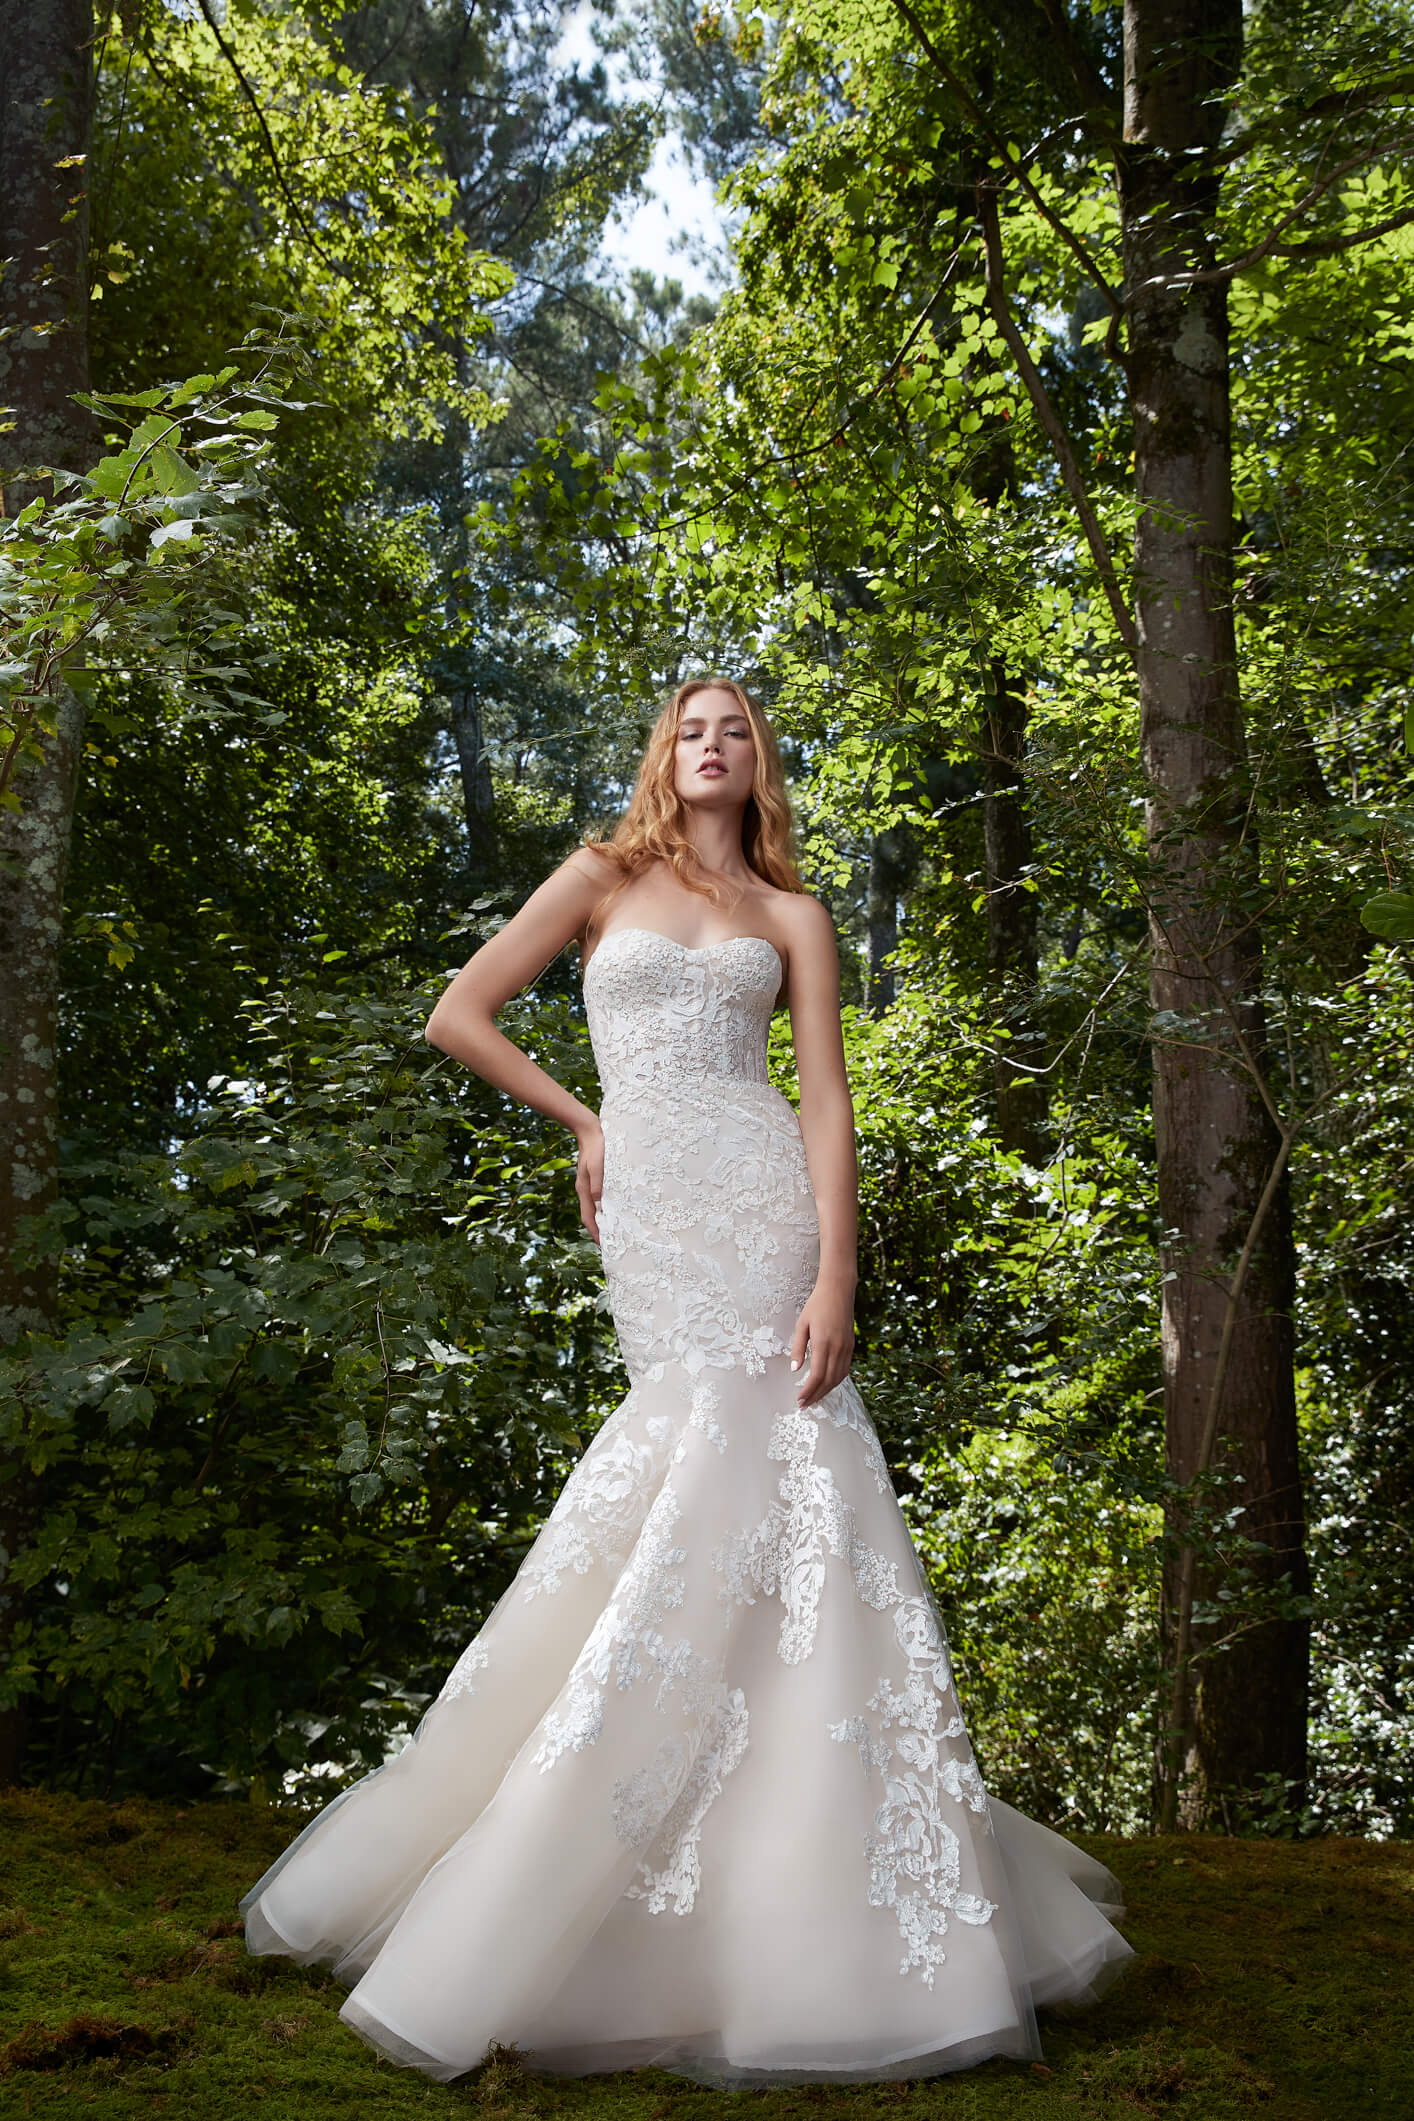 Bliss by Anne Barge is the strapless demi corseted bodice and mermaid skirt complimented by appliqued allover with rose embroidered lace.